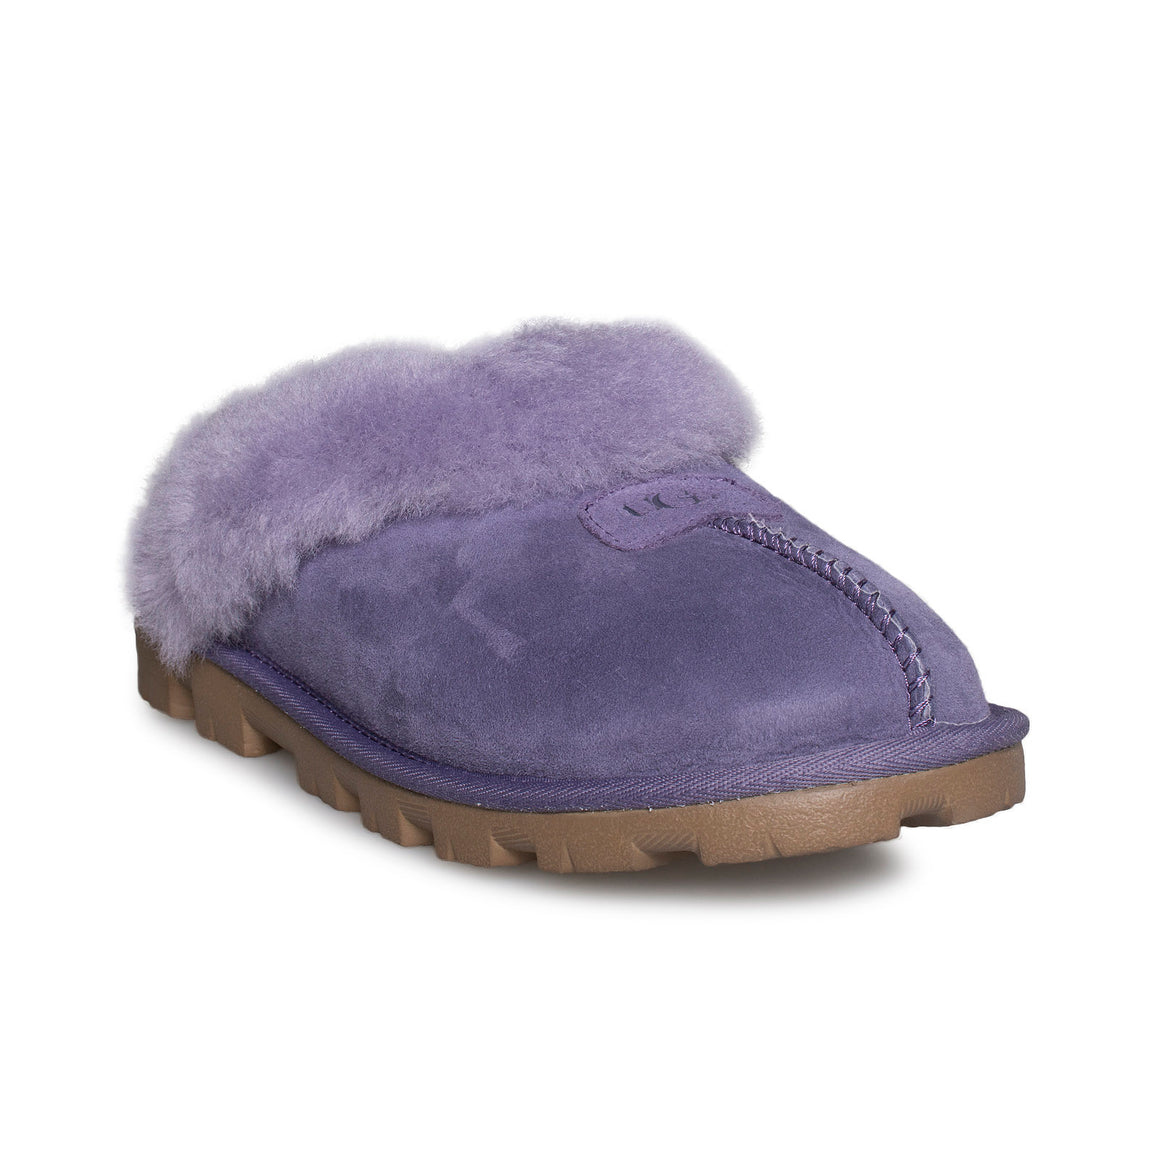 UGG Coquette Purple Sage Slippers - Women's